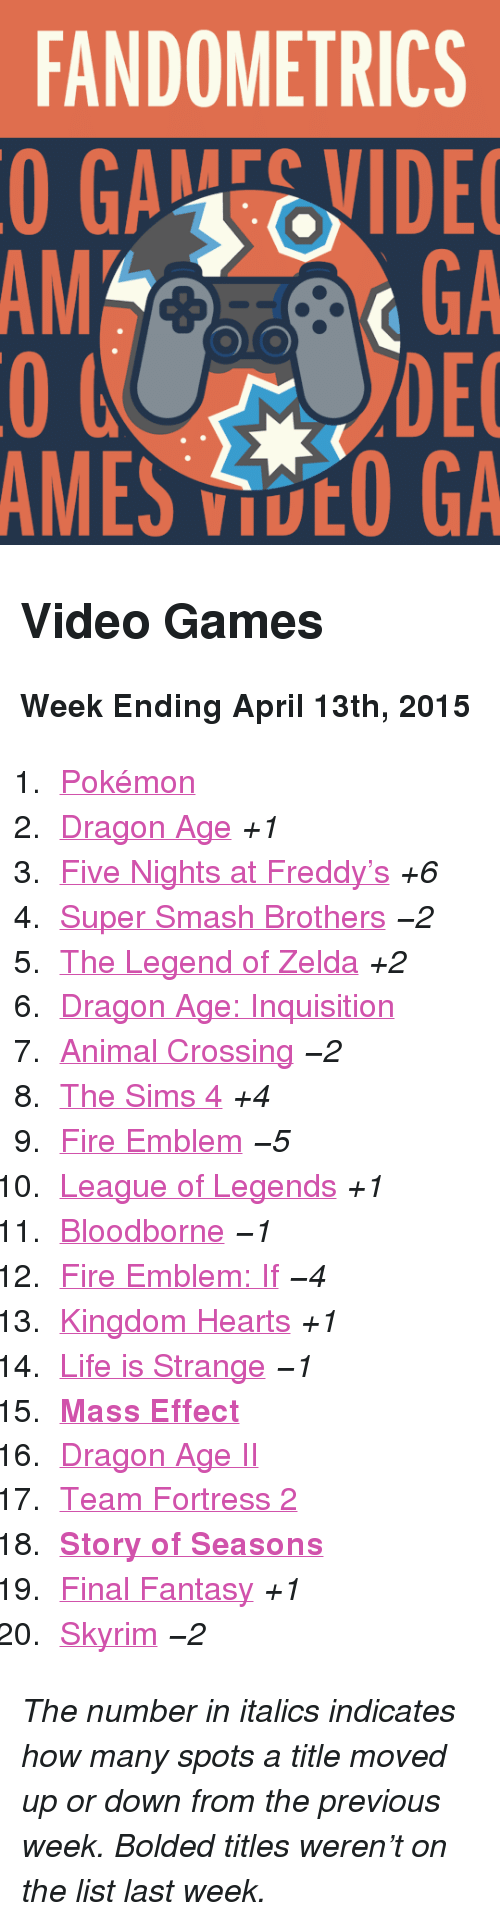 """Fire, League of Legends, and Life: FANDOMETRICS  GAEVIDE  GA  DEC  AMES VOO GA  AM <h2>Video Games</h2><p><b>Week Ending April 13th, 2015</b></p><ol><li><a href=""""http://www.tumblr.com/search/pokemon"""">Pokémon</a></li>  <li><a href=""""http://www.tumblr.com/search/dragon%20age"""">Dragon Age</a><i>+1</i></li>  <li><a href=""""http://www.tumblr.com/search/five%20nights%20at%20freddy's"""">Five Nights at Freddy&rsquo;s</a><i>+6</i></li>  <li><a href=""""http://www.tumblr.com/search/super%20smash%20bros"""">Super Smash Brothers</a><i>−2</i></li>  <li><a href=""""http://www.tumblr.com/search/legend%20of%20zelda"""">The Legend of Zelda</a><i>+2</i></li>  <li><a href=""""http://www.tumblr.com/search/dragon%20age%20inquisition"""">Dragon Age: Inquisition</a></li>  <li><a href=""""http://www.tumblr.com/search/acnl"""">Animal Crossing</a><i>−2</i></li>  <li><a href=""""http://www.tumblr.com/search/sims%204"""">The Sims 4</a><i>+4</i></li>  <li><a href=""""http://www.tumblr.com/search/fire%20emblem"""">Fire Emblem</a><i>−5</i></li>  <li><a href=""""http://www.tumblr.com/search/league%20of%20legends"""">League of Legends</a><i>+1</i></li>  <li><a href=""""http://www.tumblr.com/search/bloodborne"""">Bloodborne</a><i>−1</i></li>  <li><a href=""""http://www.tumblr.com/search/fire%20emblem%20if"""">Fire Emblem: If</a><i>−4</i></li>  <li><a href=""""http://www.tumblr.com/search/kingdom%20hearts"""">Kingdom Hearts</a><i>+1</i></li>  <li><a href=""""http://www.tumblr.com/search/life%20is%20strange"""">Life is Strange</a><i>−1</i></li>  <li><a href=""""http://www.tumblr.com/search/mass%20effect""""><b>Mass Effect</b></a></li>  <li><a href=""""http://www.tumblr.com/search/dragon%20age%202"""">Dragon Age II</a></li>  <li><a href=""""http://www.tumblr.com/search/tf2"""">Team Fortress 2</a></li>  <li><a href=""""http://www.tumblr.com/search/story%20of%20seasons""""><b>Story of Seasons</b></a></li>  <li><a href=""""http://www.tumblr.com/search/final%20fantasy"""">Final Fantasy</a><i>+1</i></li>  <li><a href=""""http://www.tumblr.com/search/skyrim"""">Skyrim</a><i>−2</i></li></ol><p><i>The number in ital"""